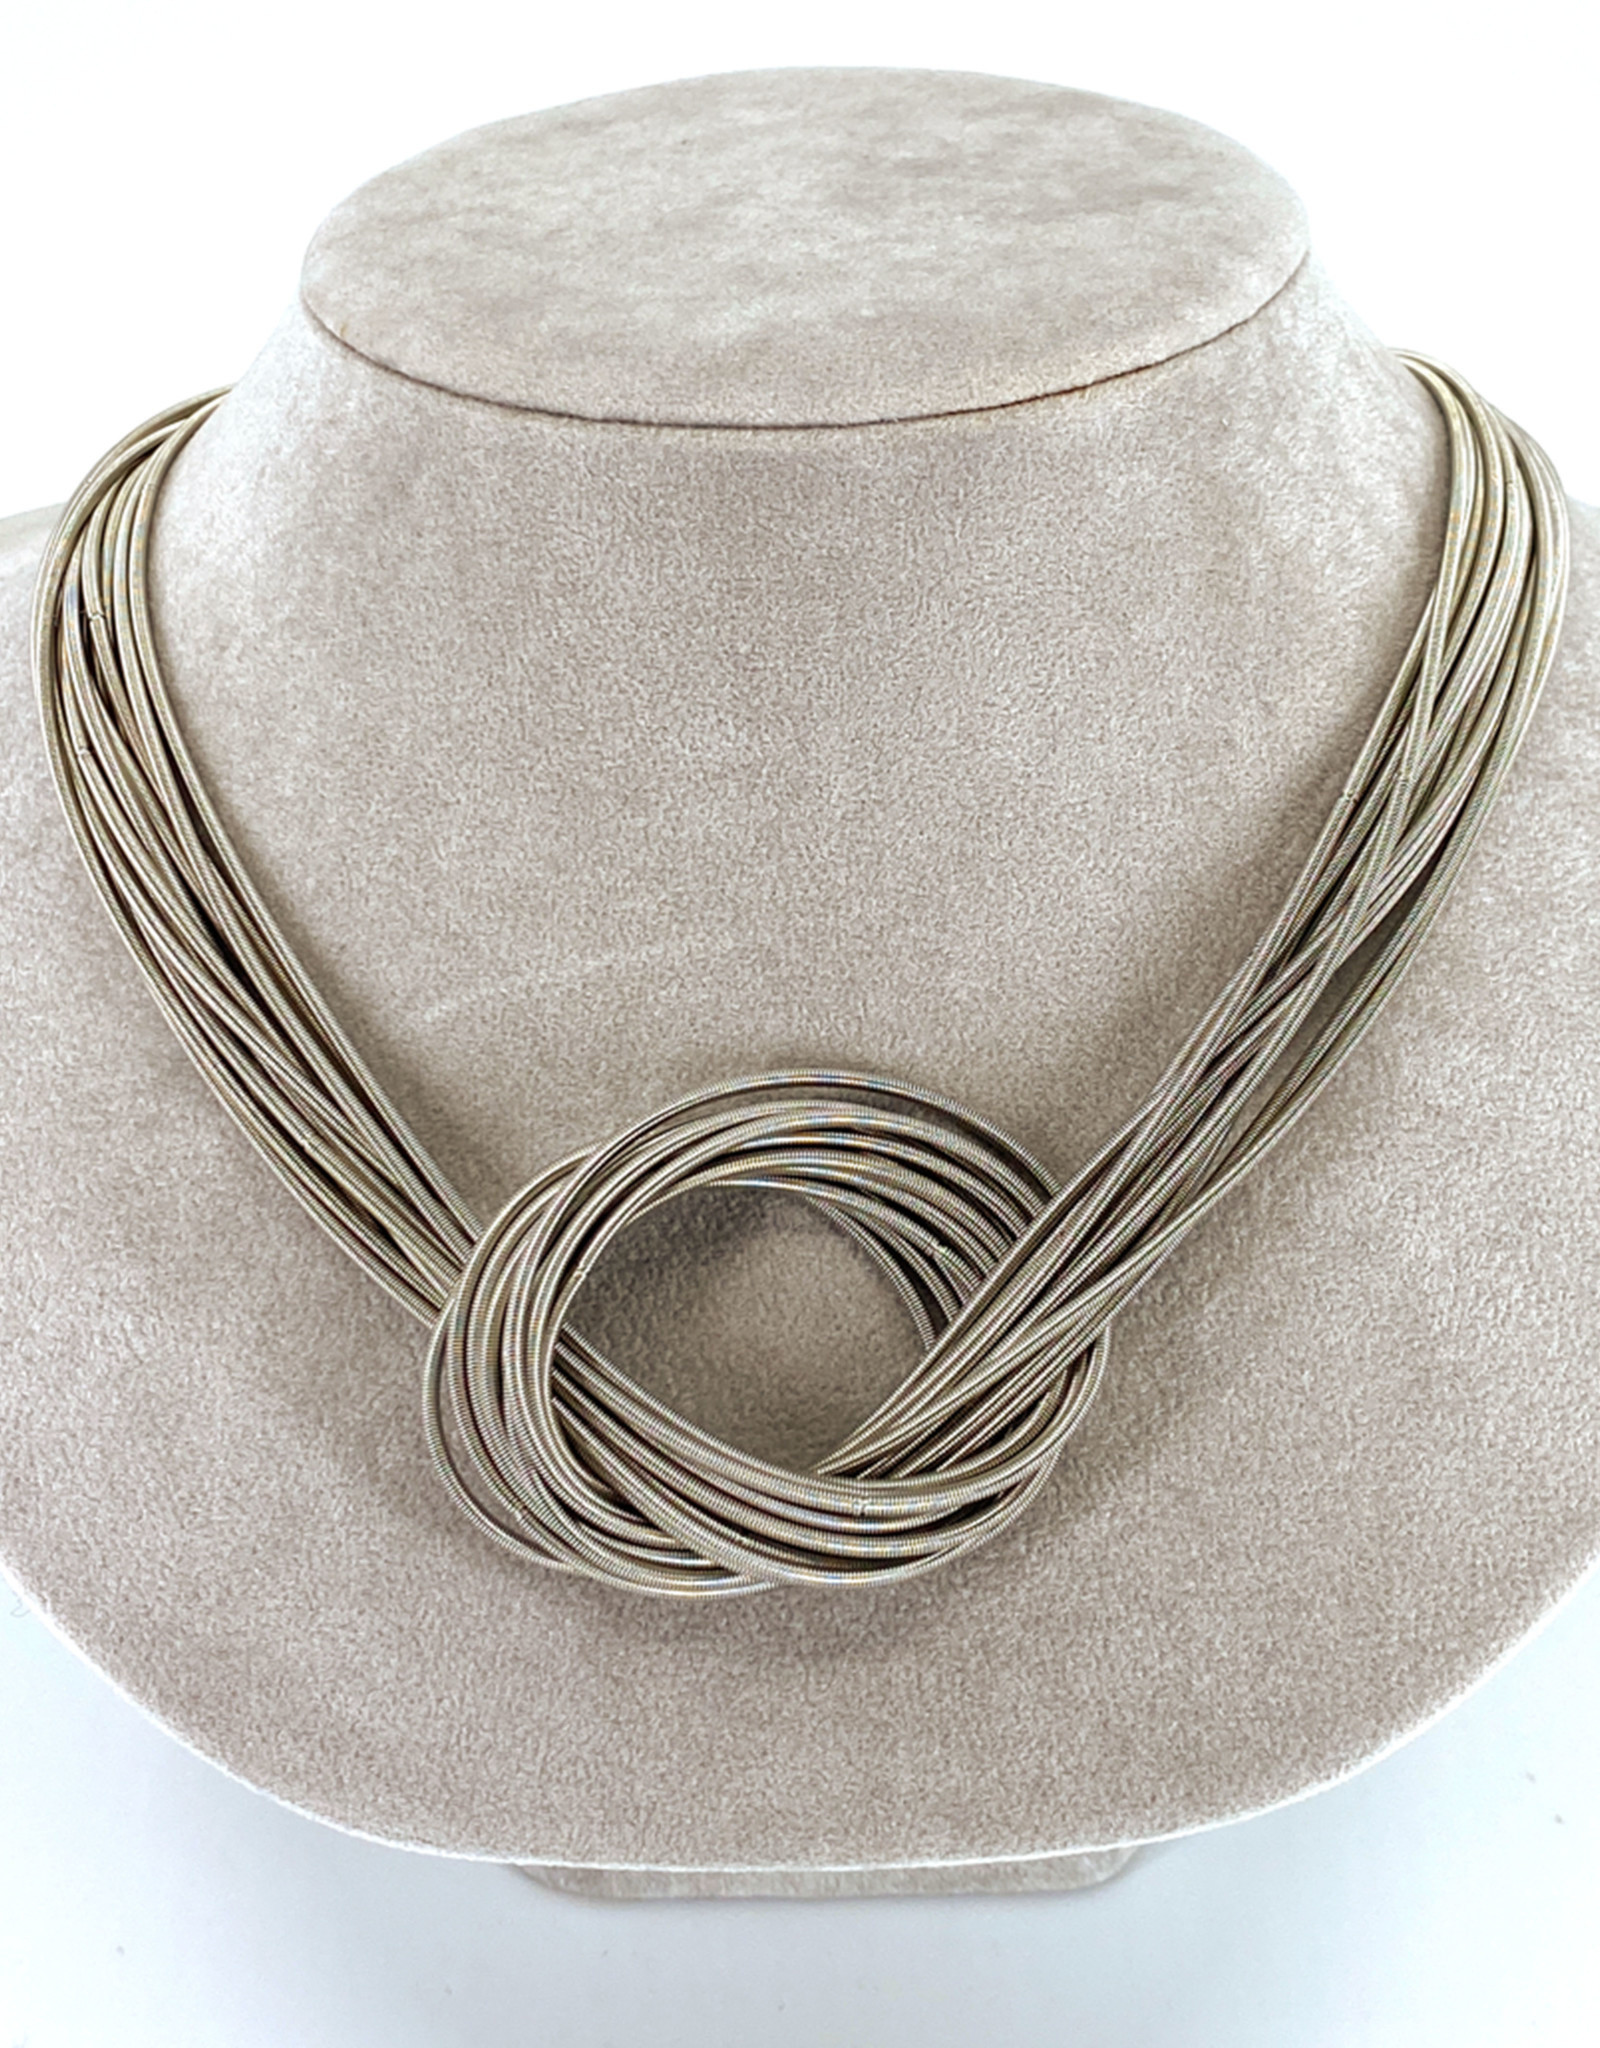 SEA LILY PIANO WIRE KNOT NECKLACE